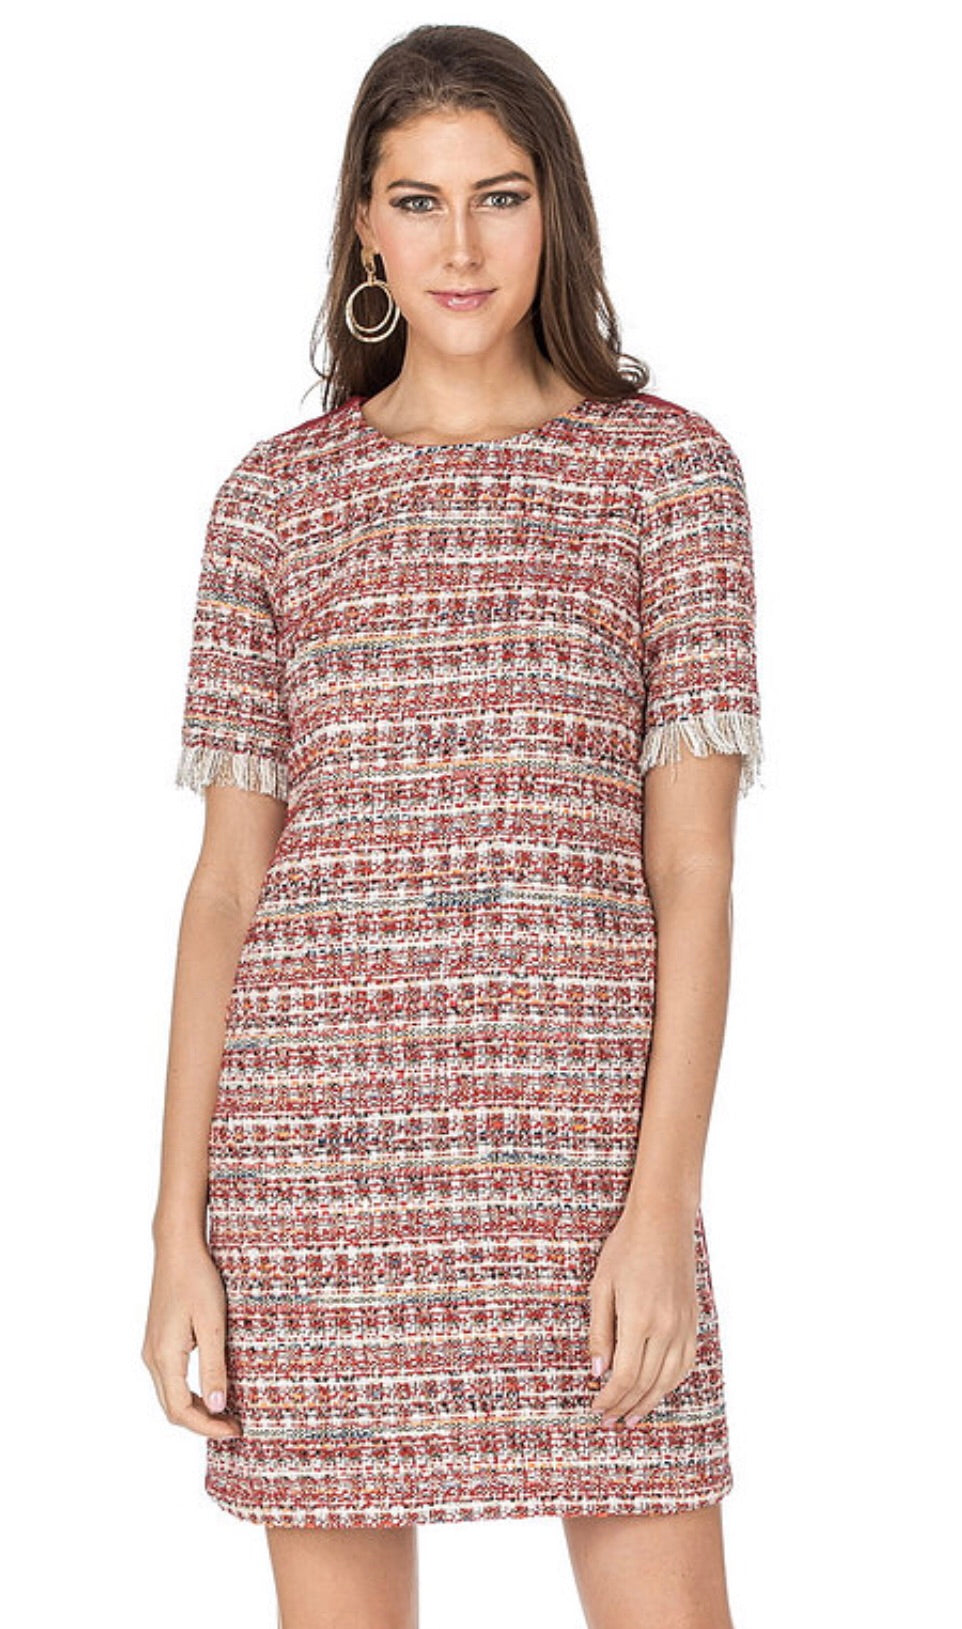 Tweed Metallic Dress